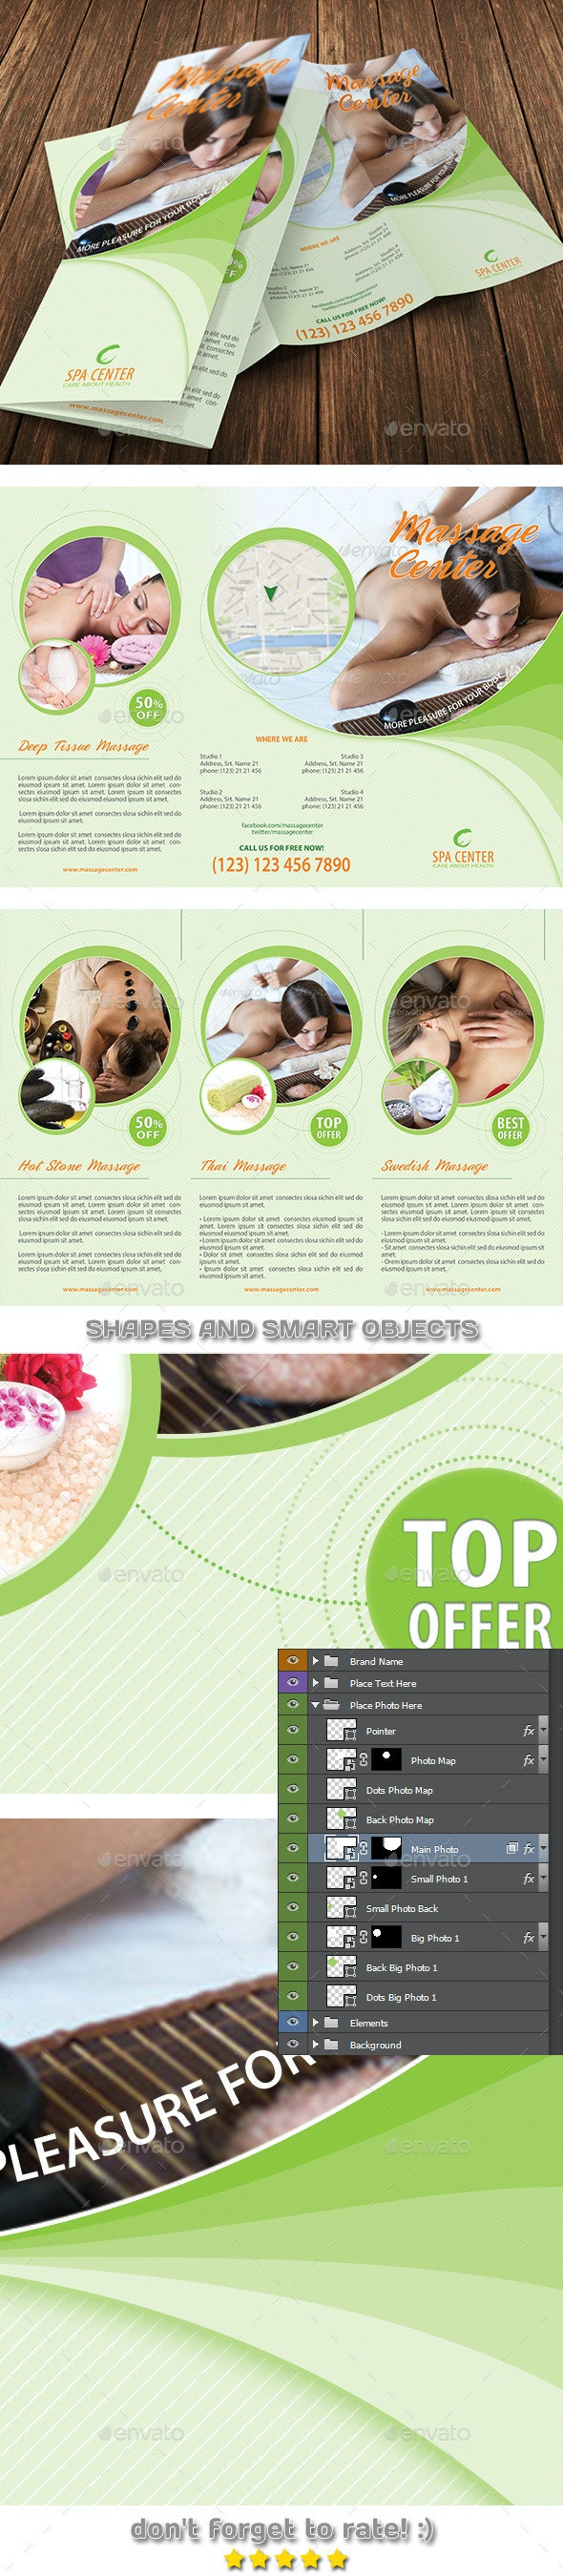 Massage and Spa Center 3-Fold Brochure 25 - Brochures Print Templates